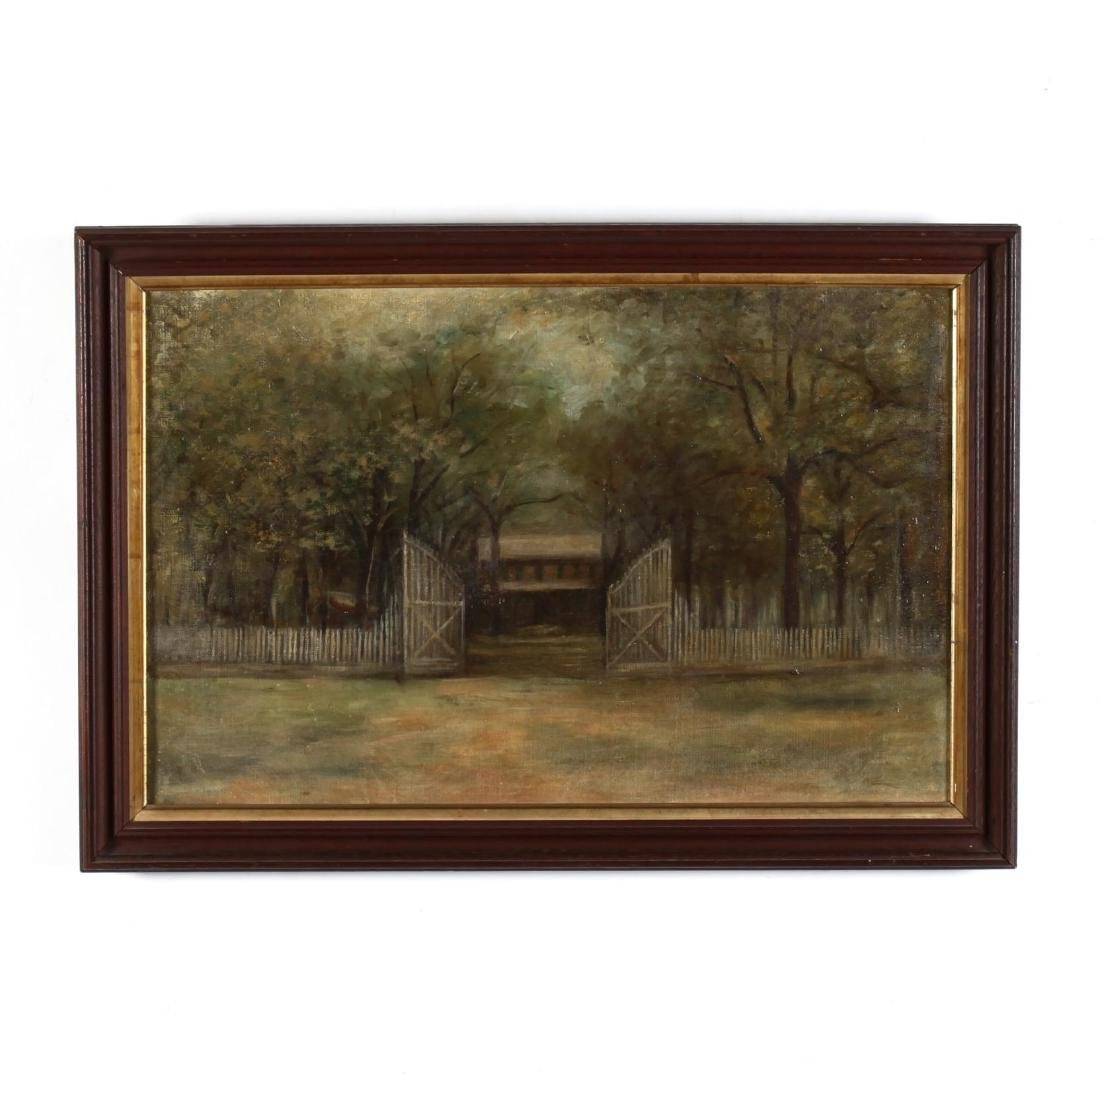 An Antique American Architectural Painting